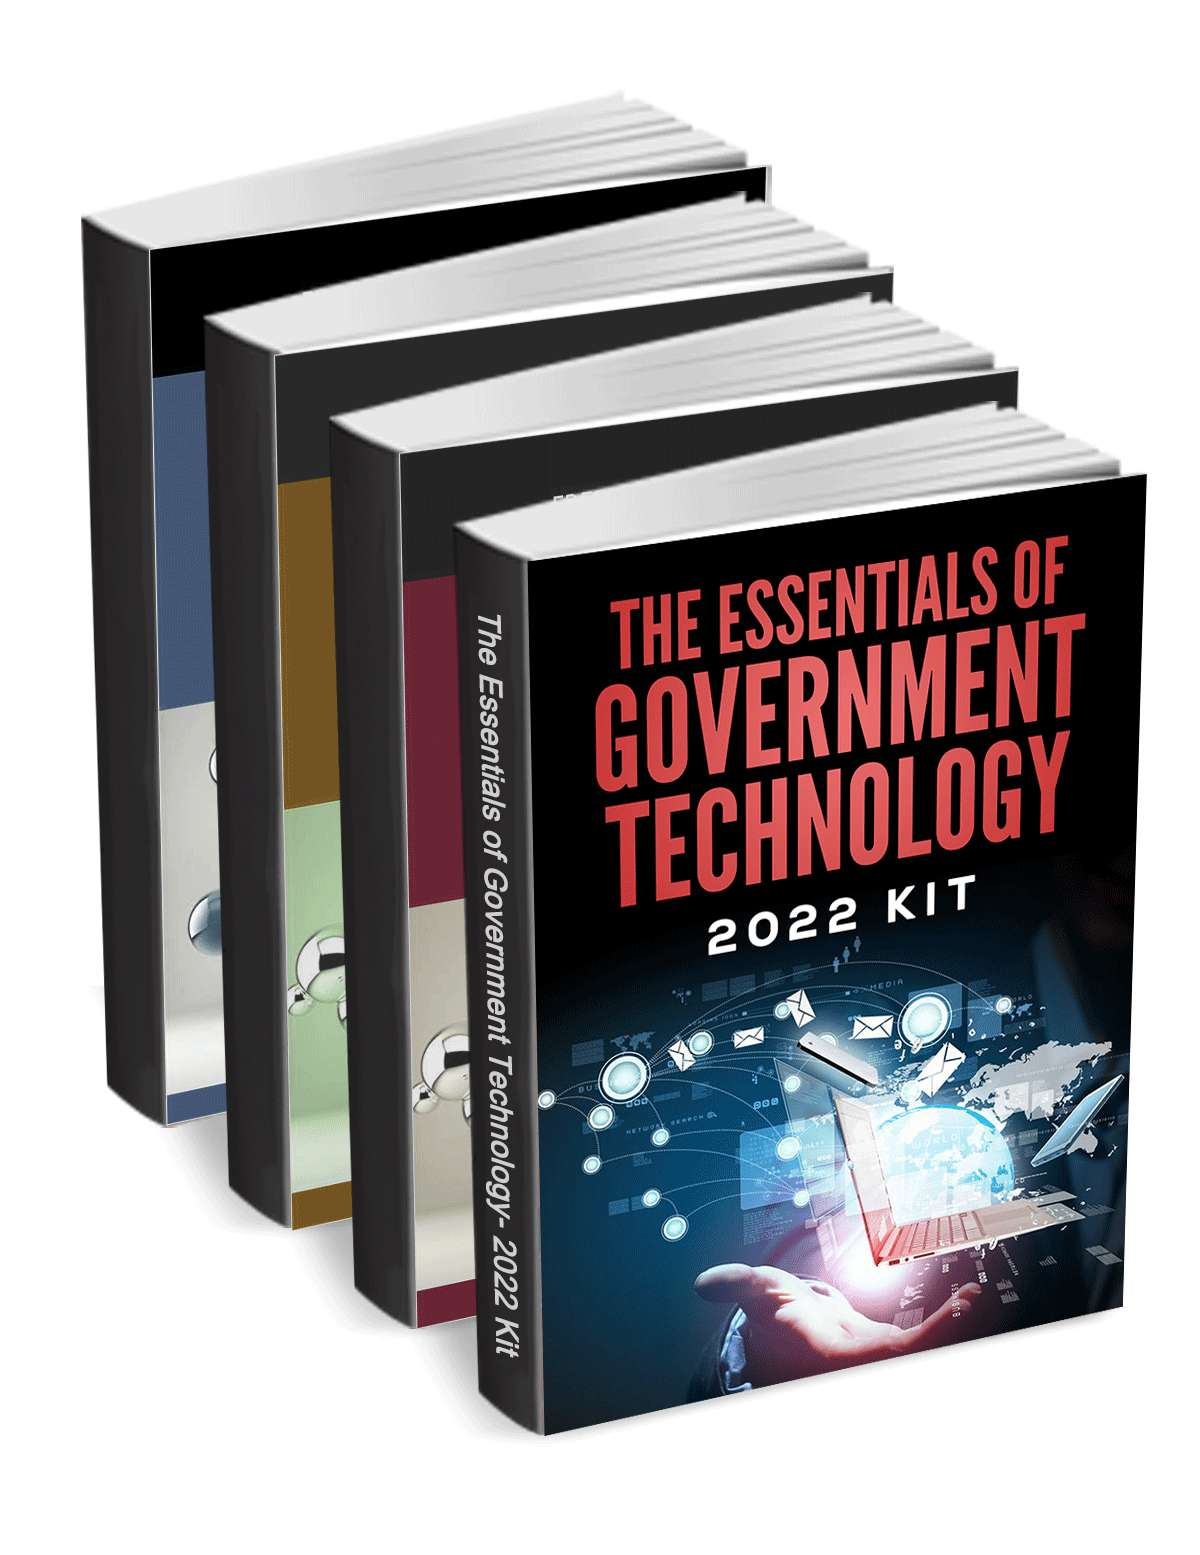 The Essentials of Government Technology - 2018 Kit